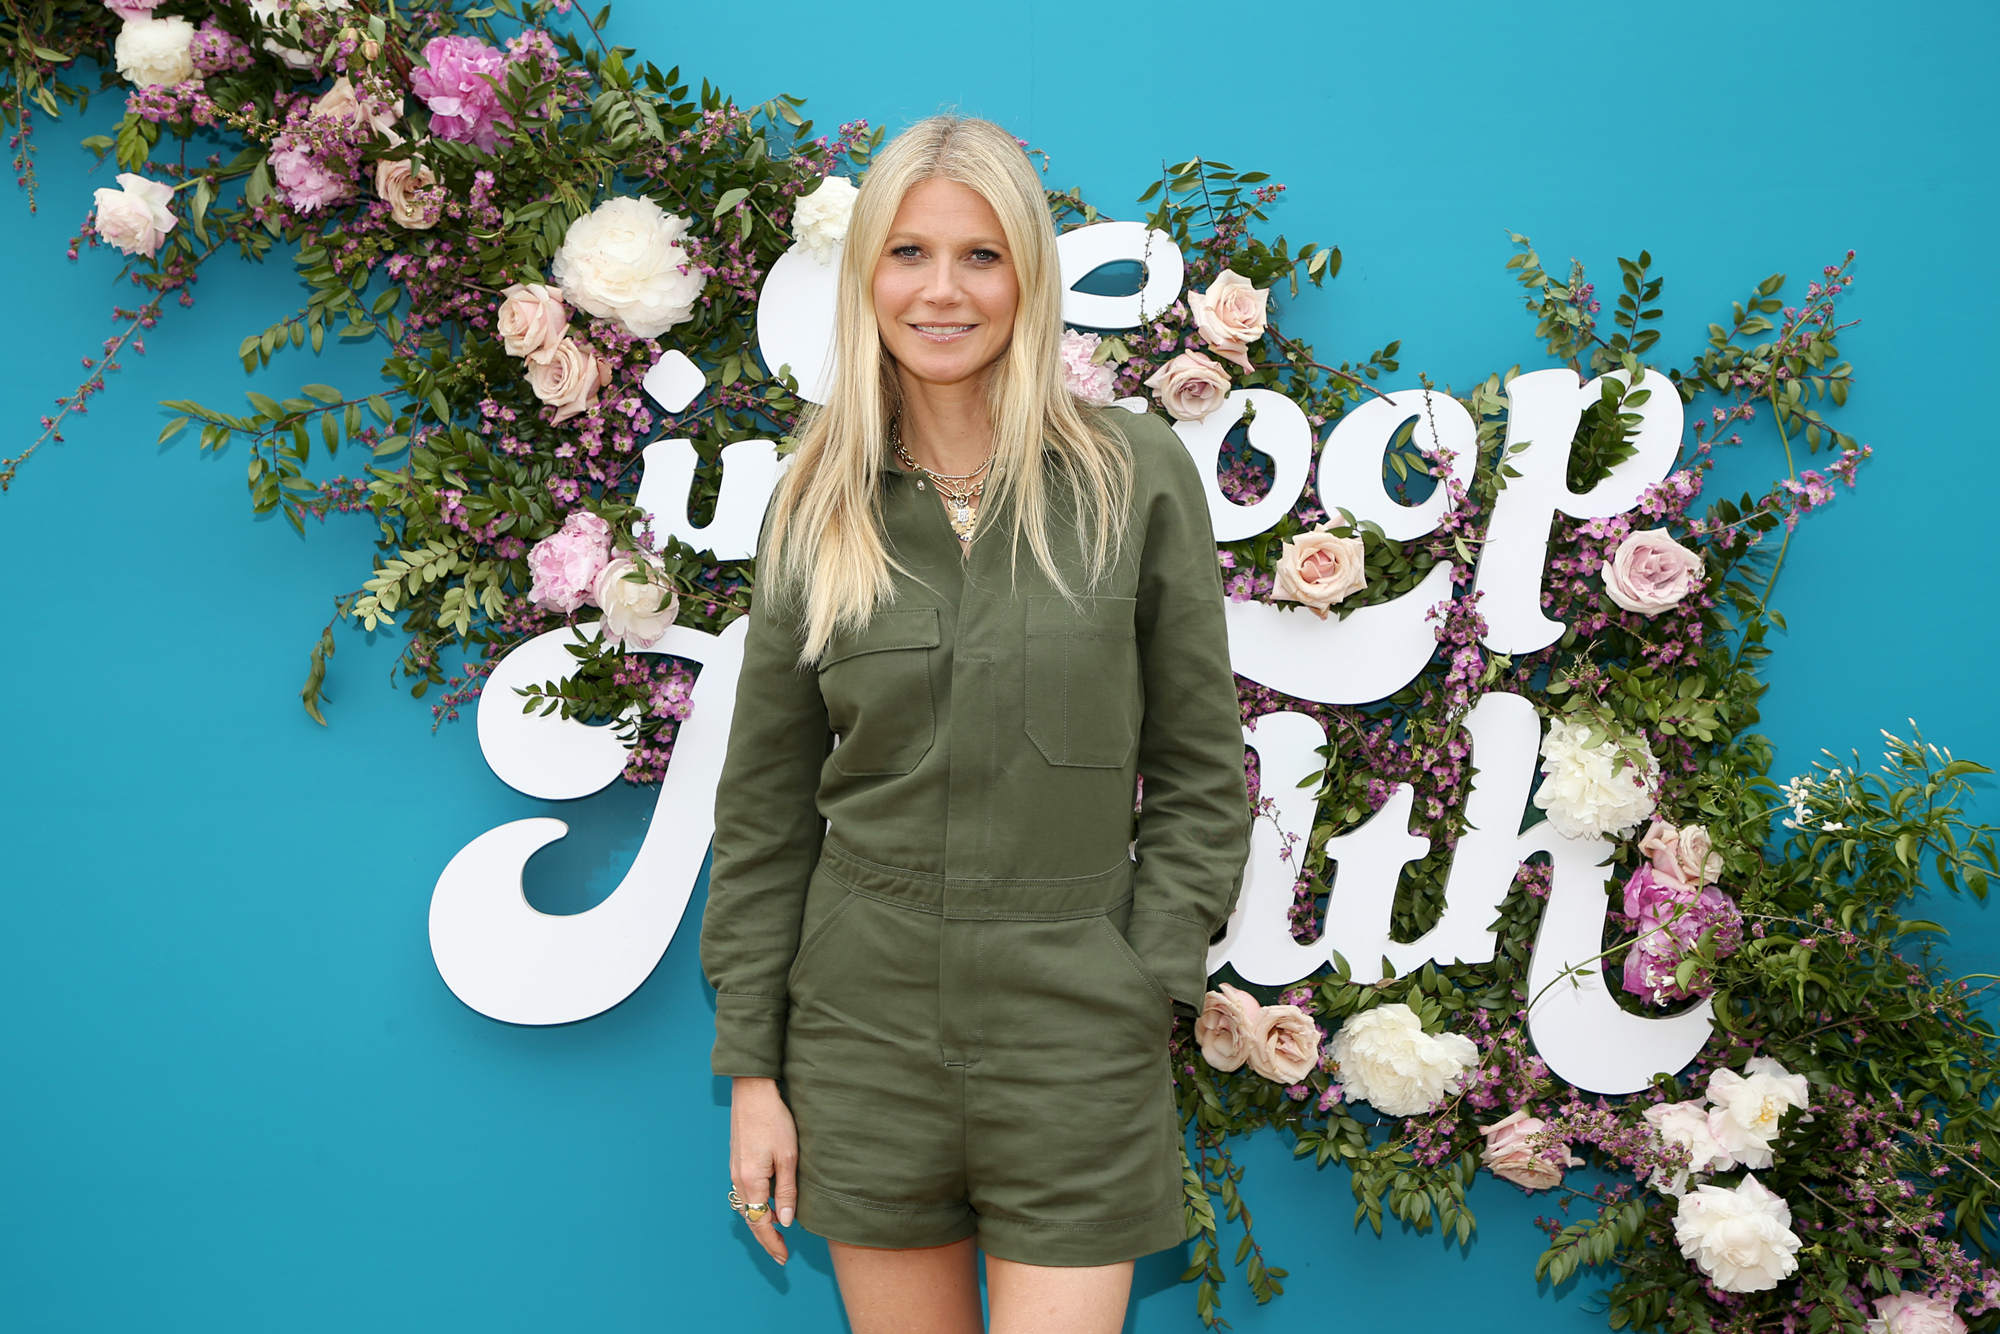 Gwyneth Paltrow is a Great Actress, but Maybe She's a Better Event Planner